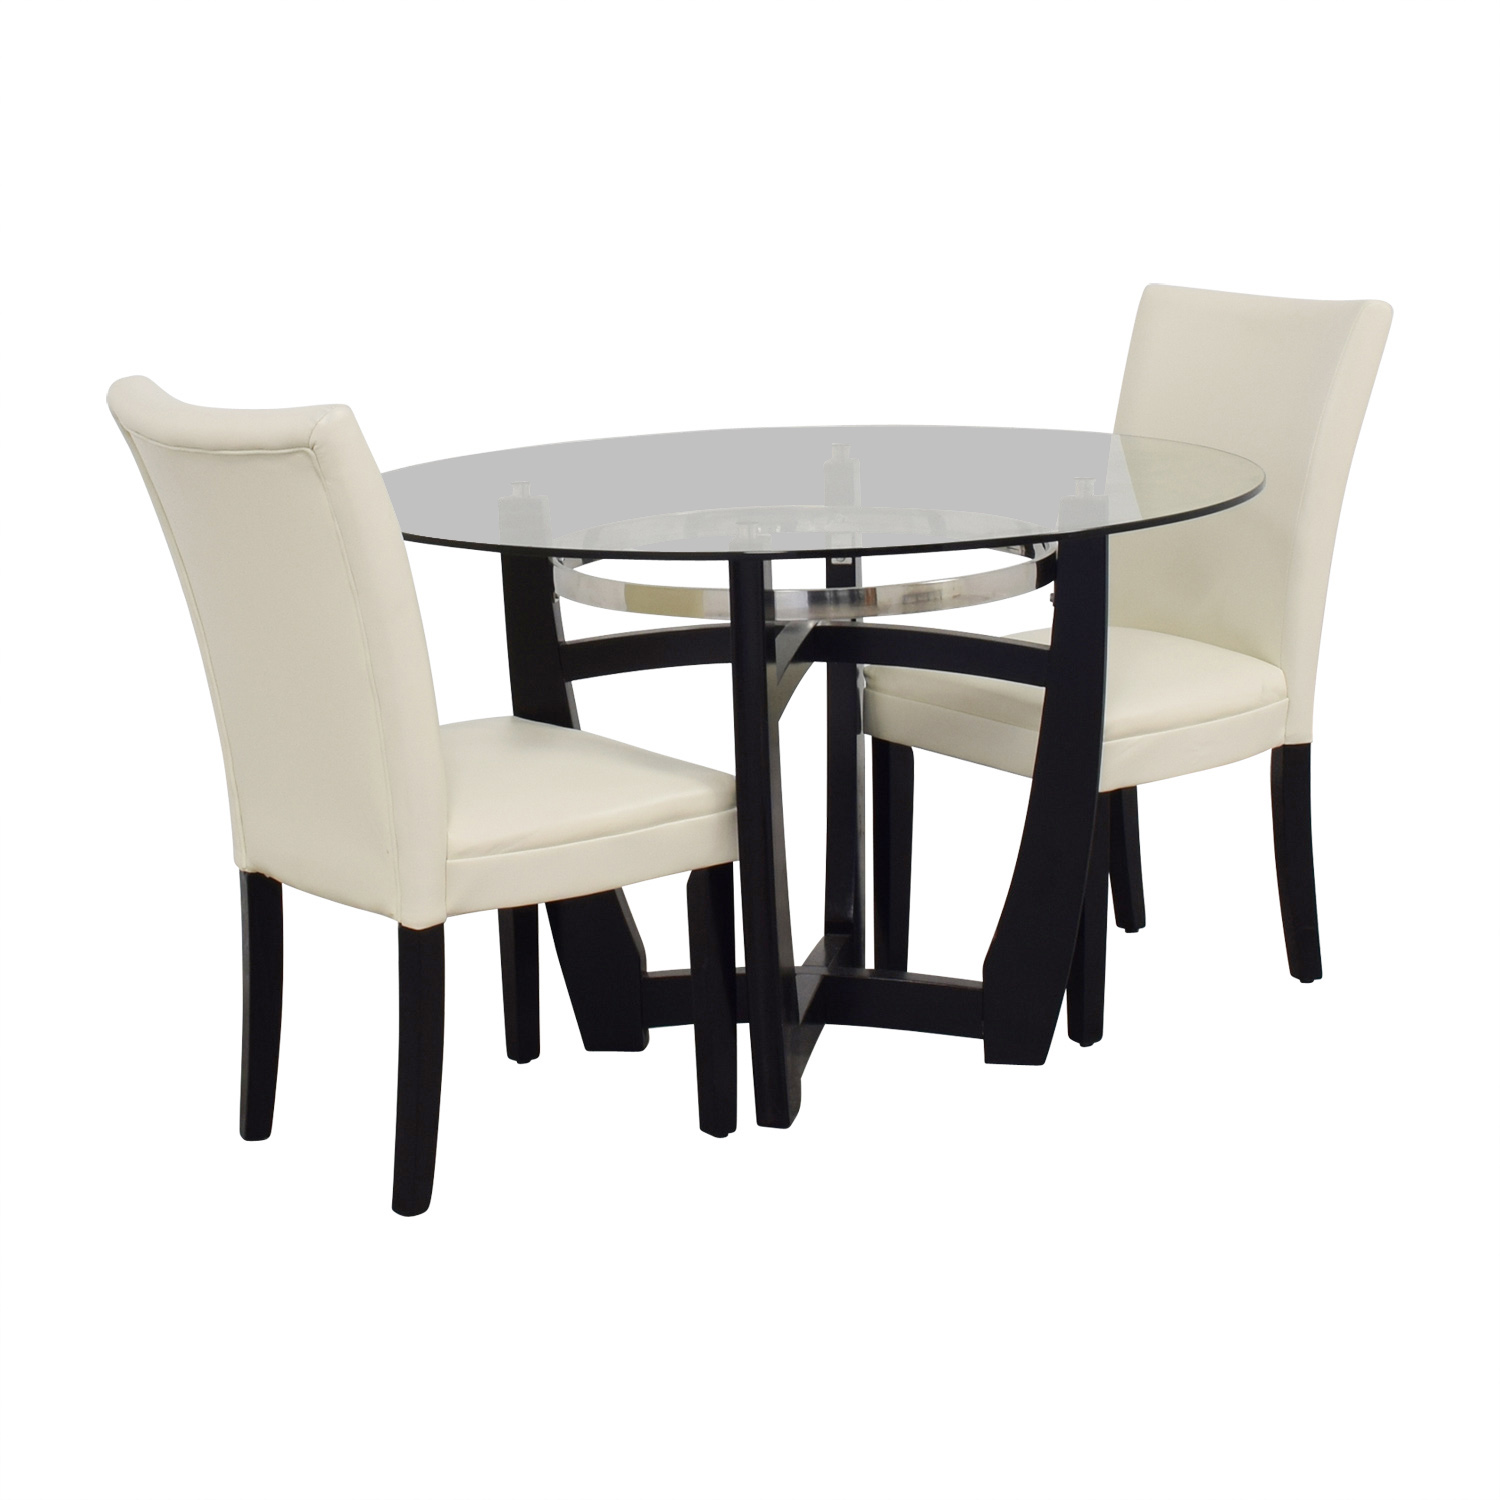 88 Off Bob S Discount Furniture Bob Furniture Round Glass Table And White Chairs Tables